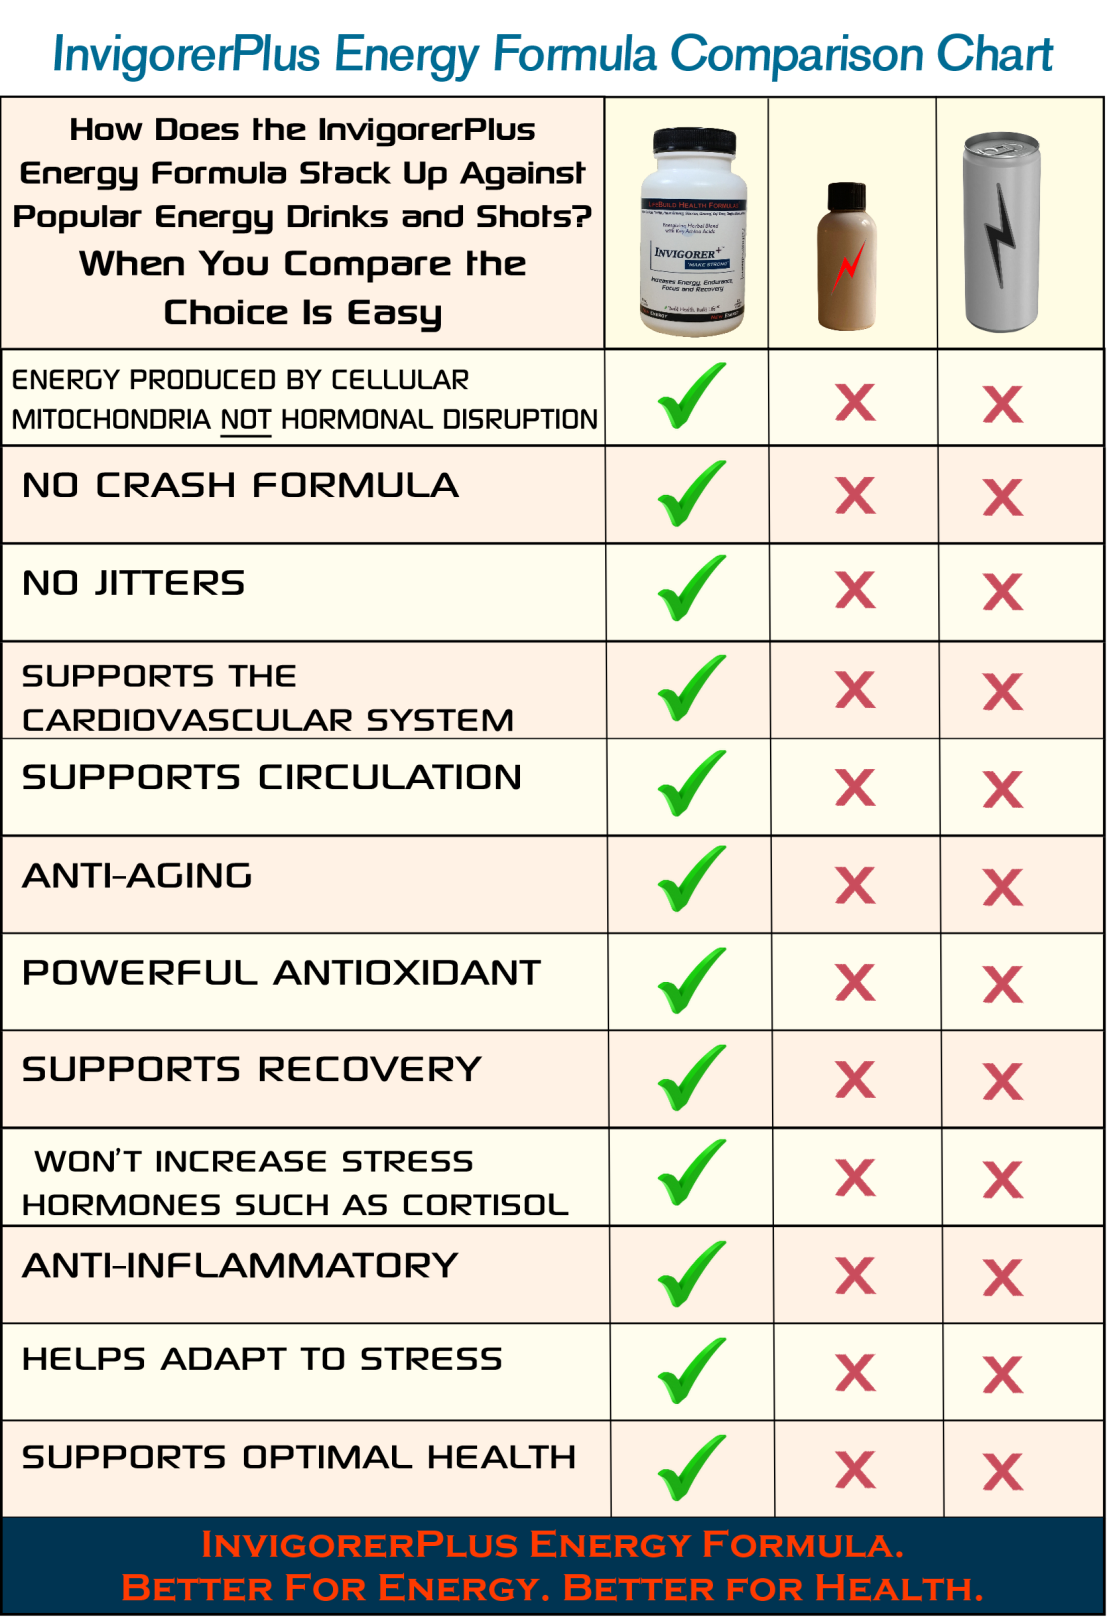 InvigorerPlus Energy Formula Energy Drink Comparison Chart